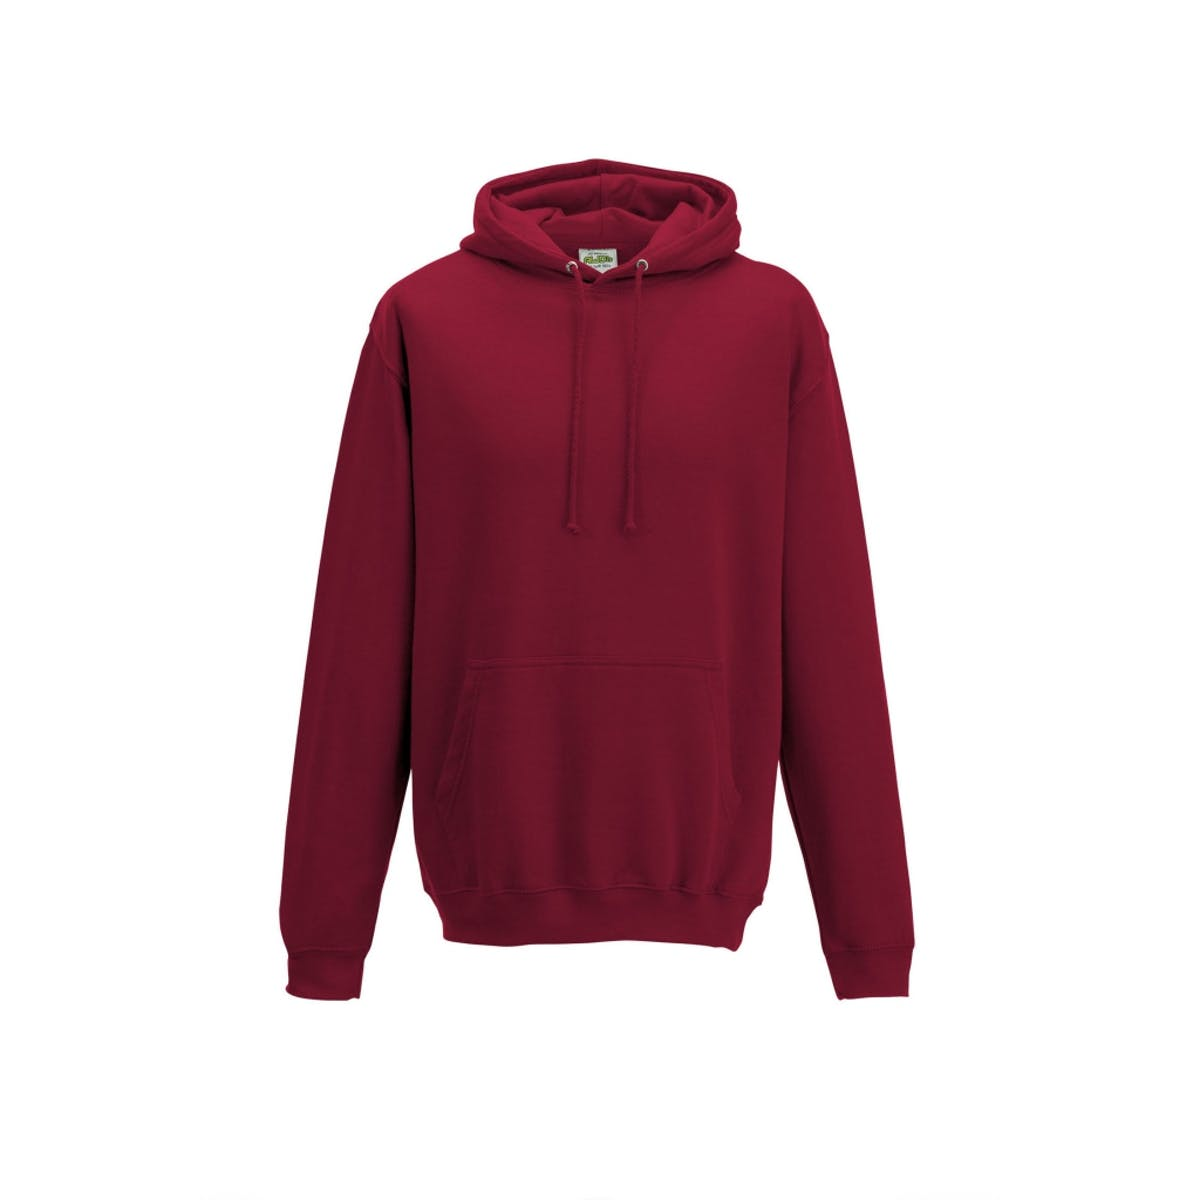 red hot chilli college hoodies